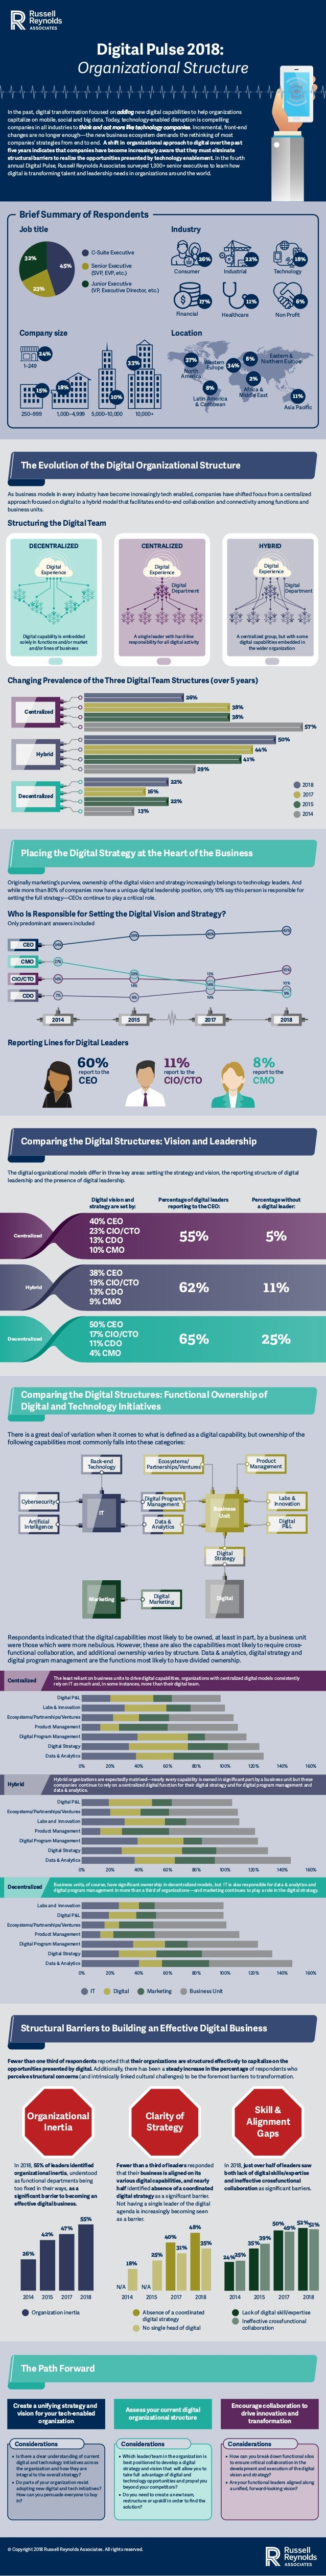 Structuring the Digital Team As business models in every industry have become increasingly tech enabled, companies have sh...